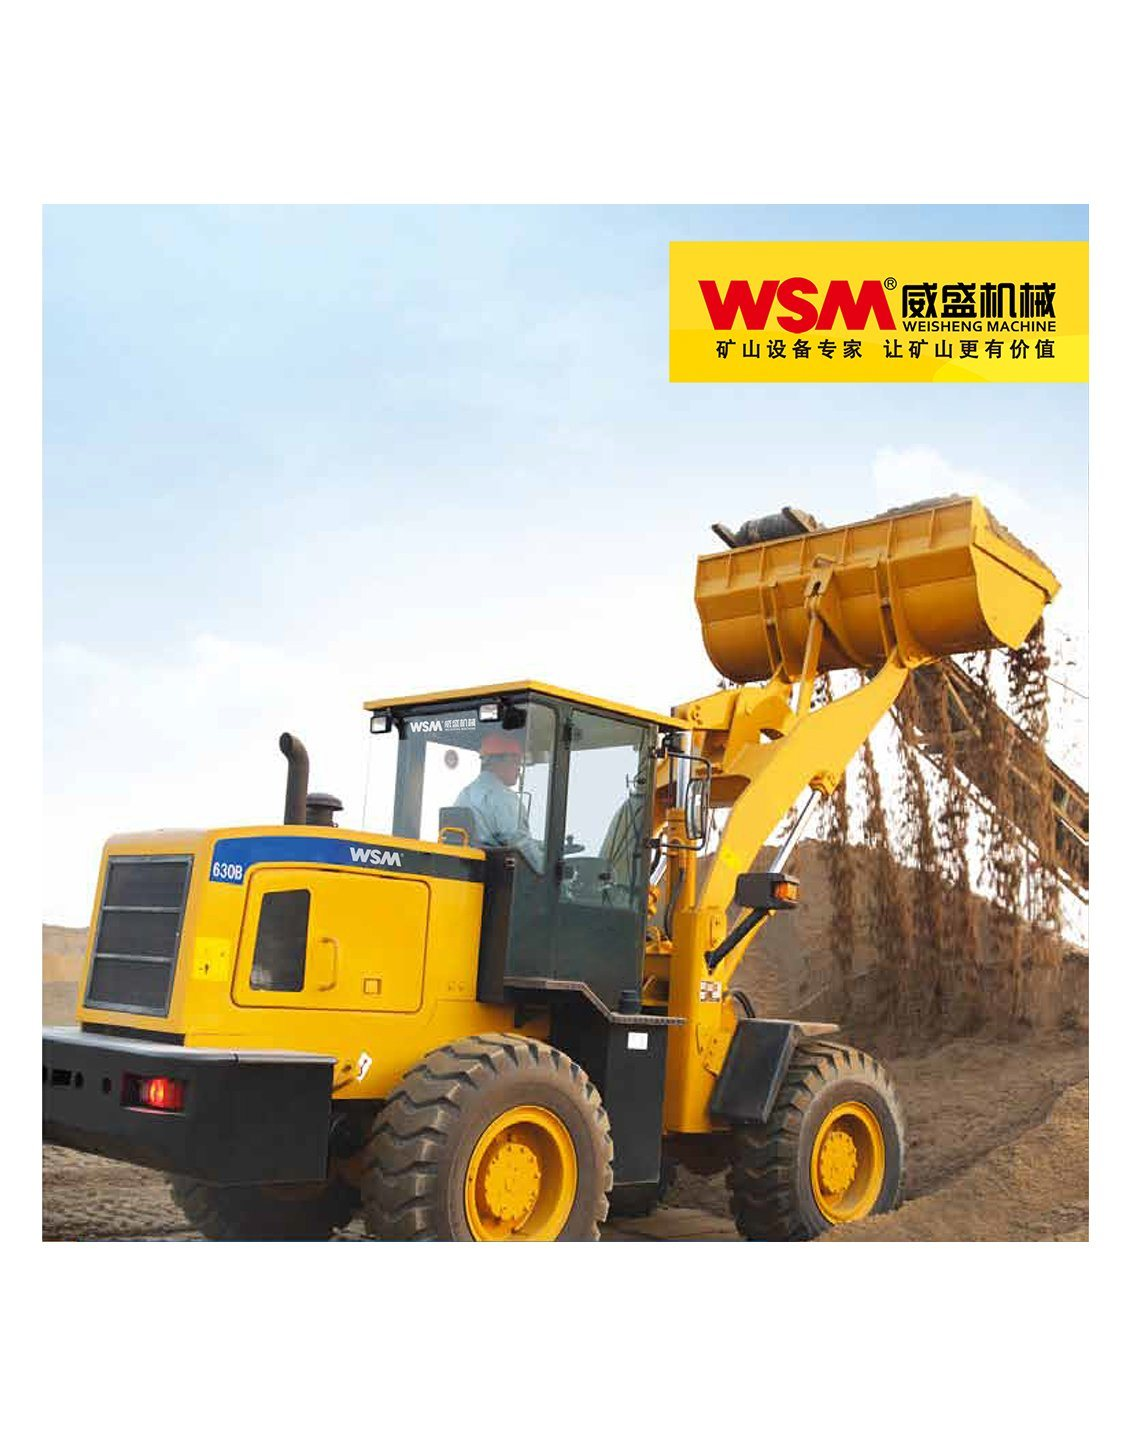 8 Tons Wheel Loader for Mining with Bucket 6 M3